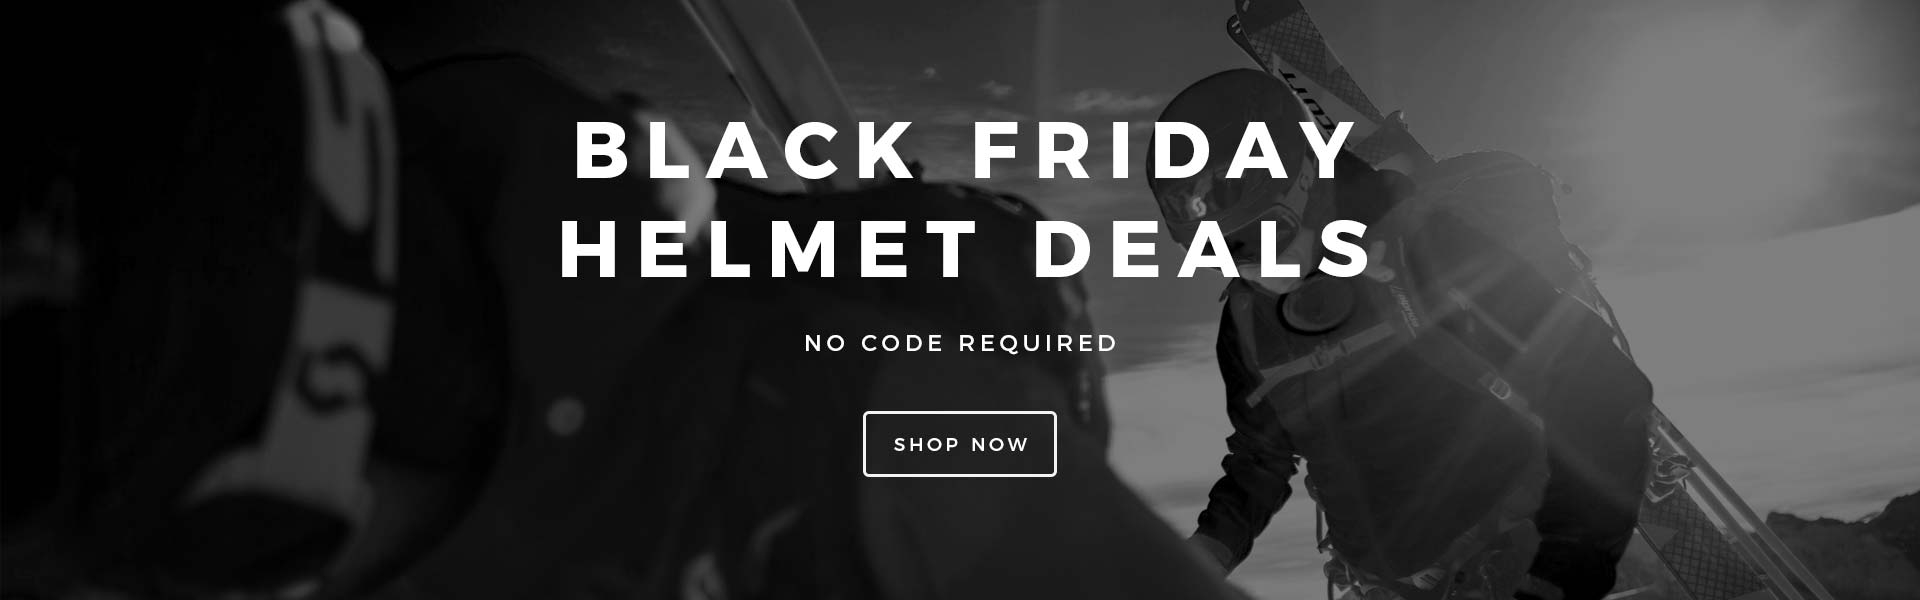 Black Friday Helmet Deals